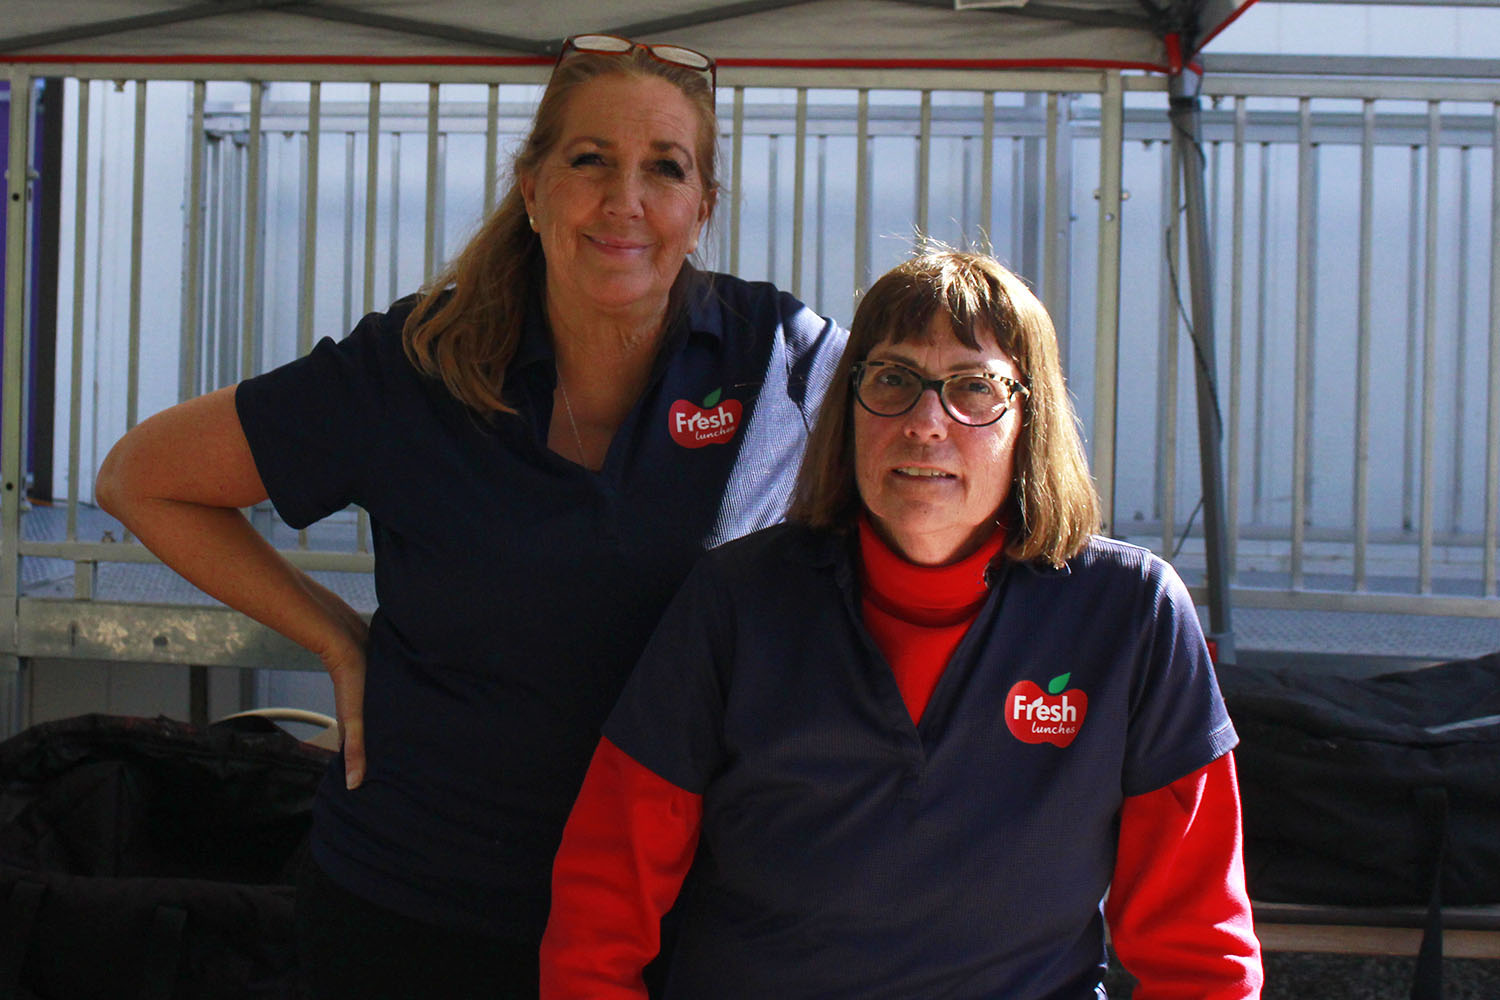 Nancy Eisenberg and Shari Dillon, two employees of FreshLunches, stand in the village during lunch.  Dillon has been working at FreshLunches for seven years and Eisenberg for four and a half.